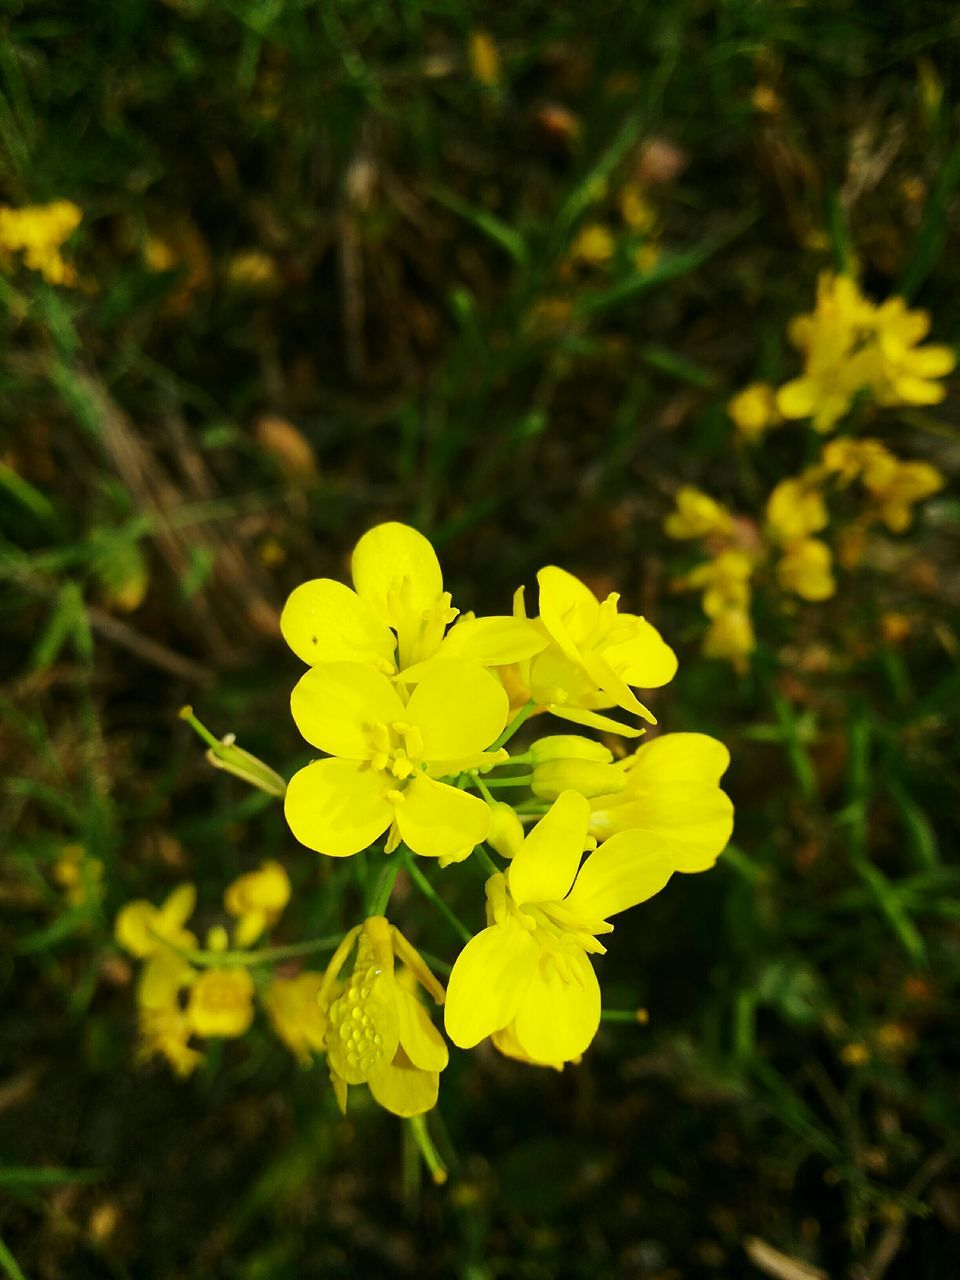 flower, nature, growth, beauty in nature, yellow, petal, fragility, plant, freshness, blooming, outdoors, no people, flower head, close-up, day